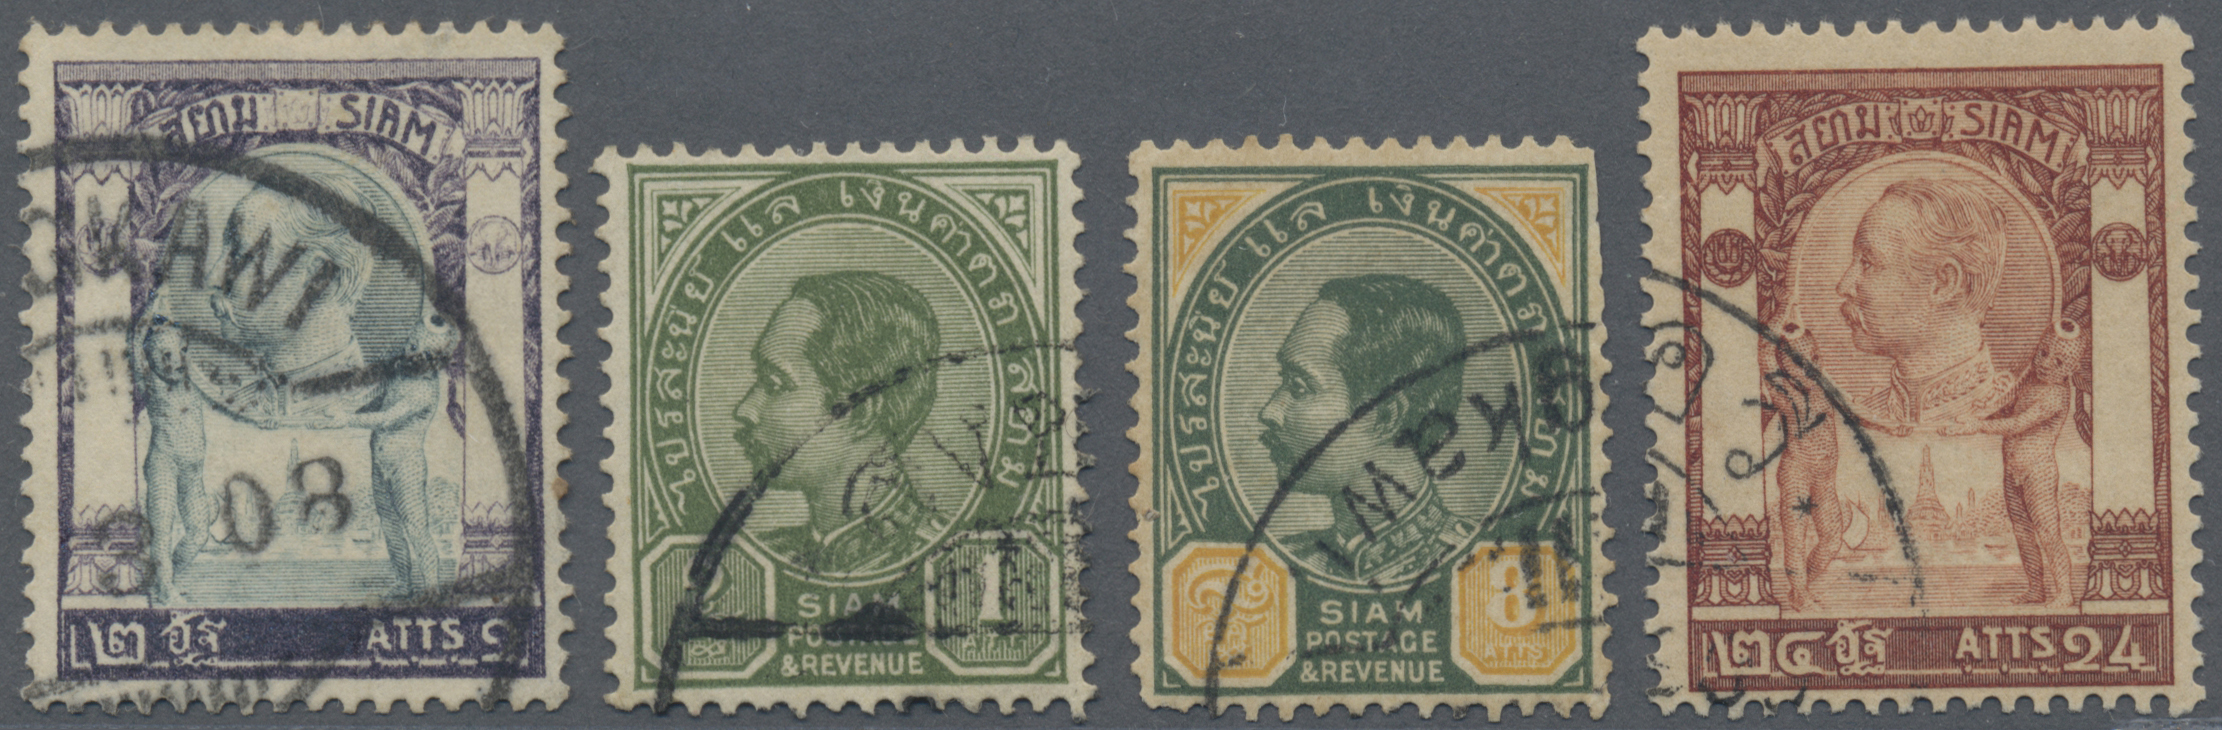 Lot 9070 - Malaiische Staaten - Kedah  -  Auktionshaus Christoph Gärtner GmbH & Co. KG Philately: ASIA single lots including Special Catalog Malaya Auction #39 Day 3